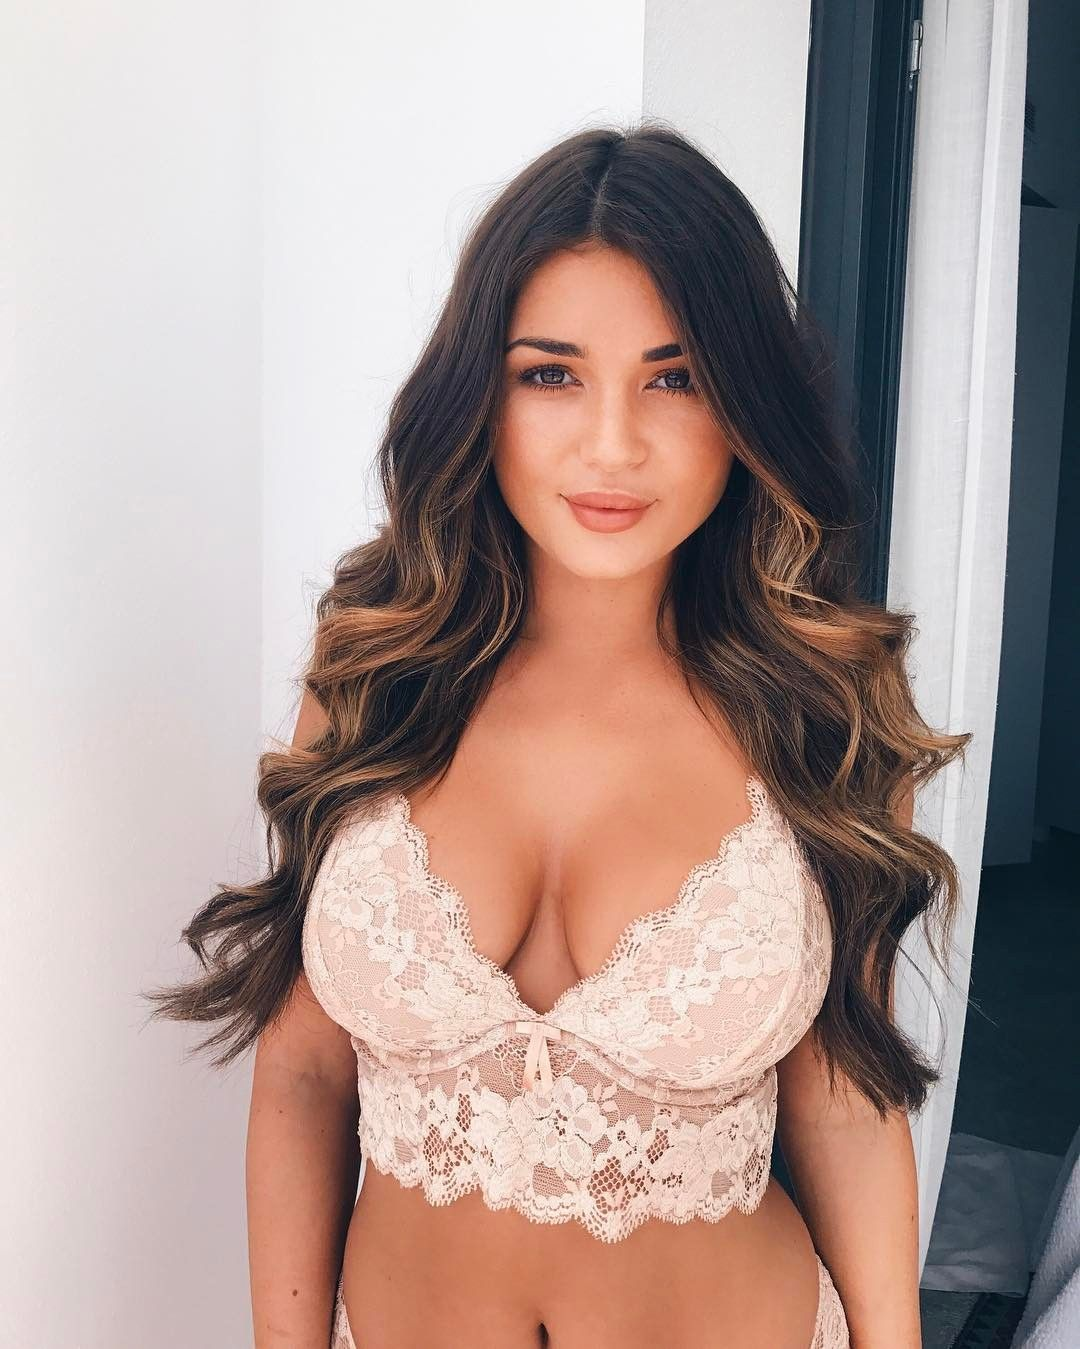 Showing busty brunette in new photo 2